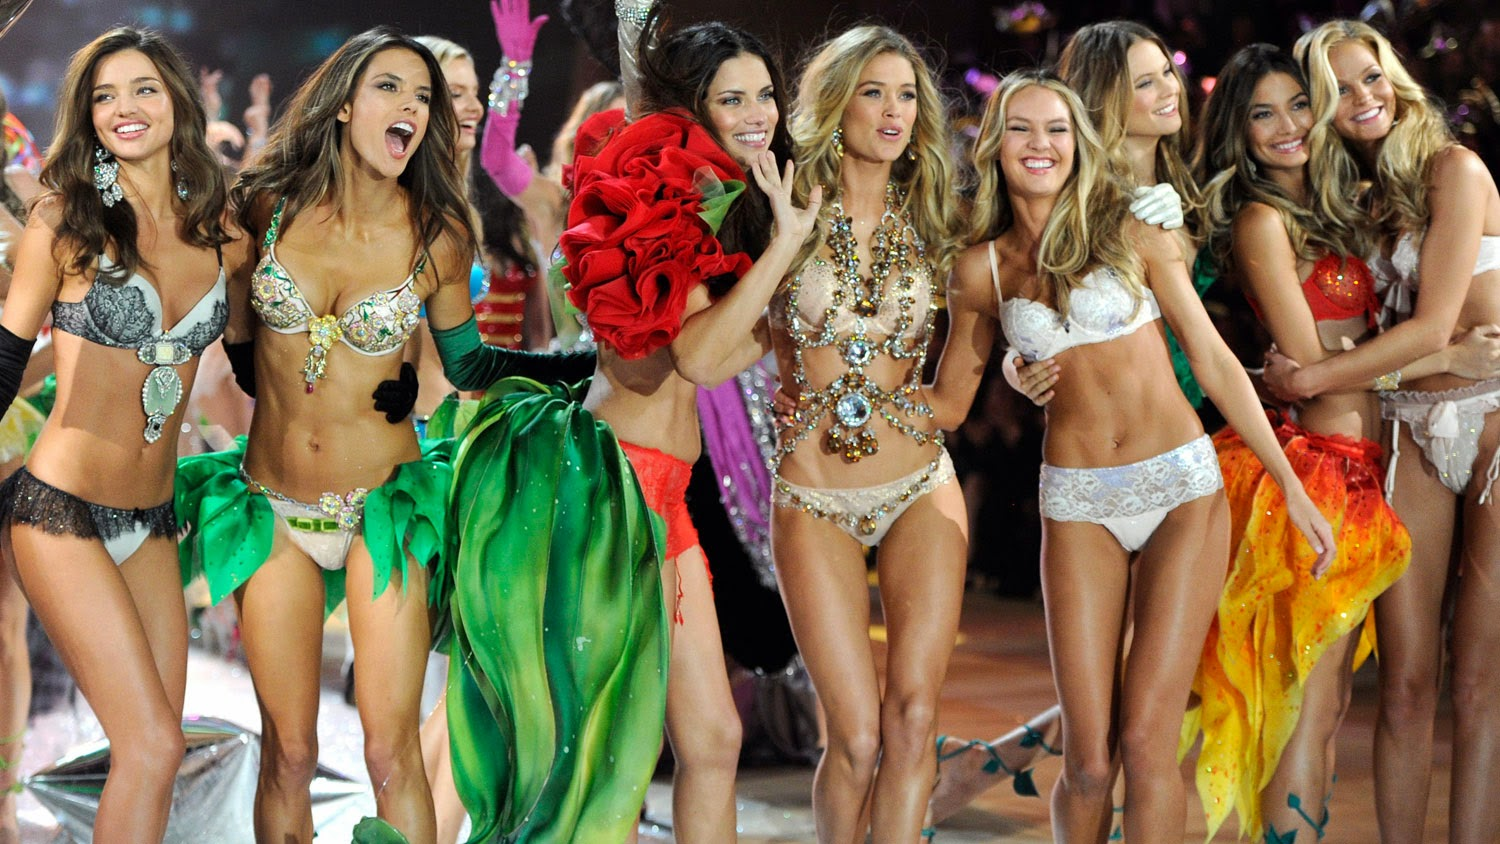 "Victoria's Secret is known for its catalogs and its annual fashion show, the Victoria's Secret Fashion Show, and has been credited with single-handedly transforming ""America's conception of lingerie"" by pioneering ""sexy underwear as fashion and ingerie mainstream entertainment."" The societal manifestation is ""the increased cultural acceptance of shopping for undies"" in the United States. Victoria's Secret is credited with ""transforming lingerie from a slightly embarrassing taboo into an accessible, even routine accessory."" In 2006 The New York Times reported that traditional fashion was influenced by intimate apparel ""in part because of the influence of Victoria's Secret and ubiquitous, sexually charged come-hither marketing."